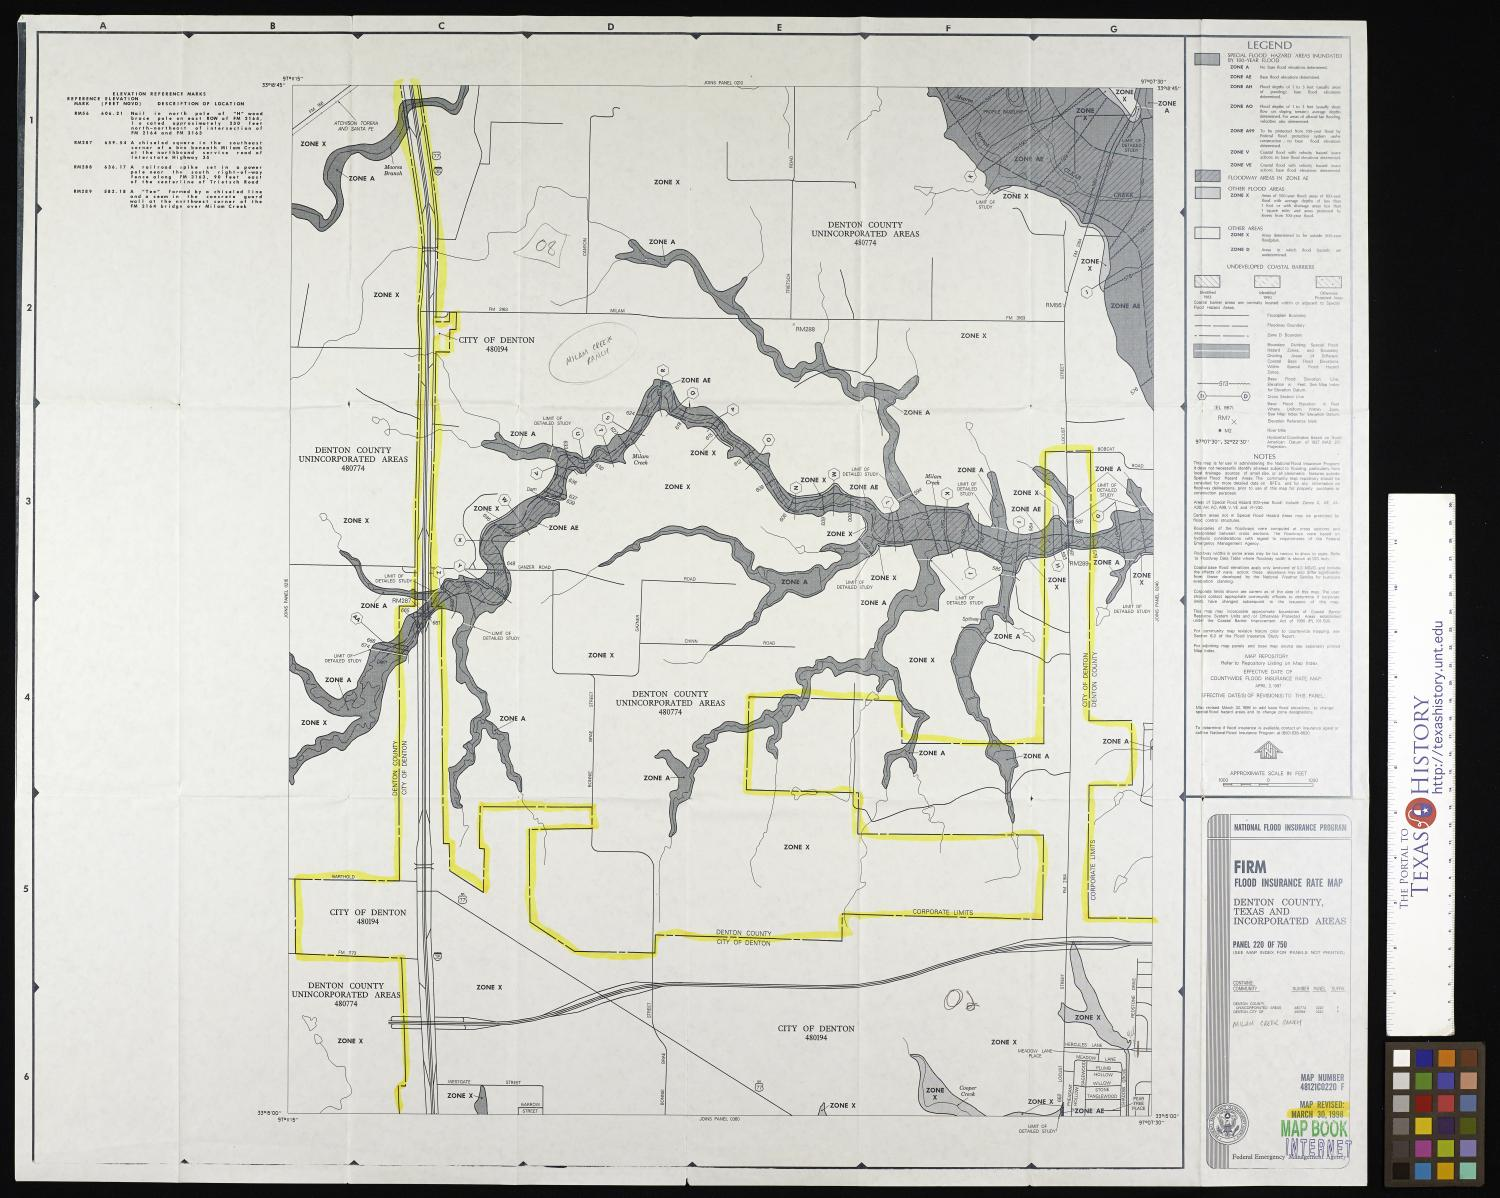 Flood Insurance Rate Map: Denton County, Texas and Incorporated Areas, Panel 220 of 750.                                                                                                      [Sequence #]: 1 of 2